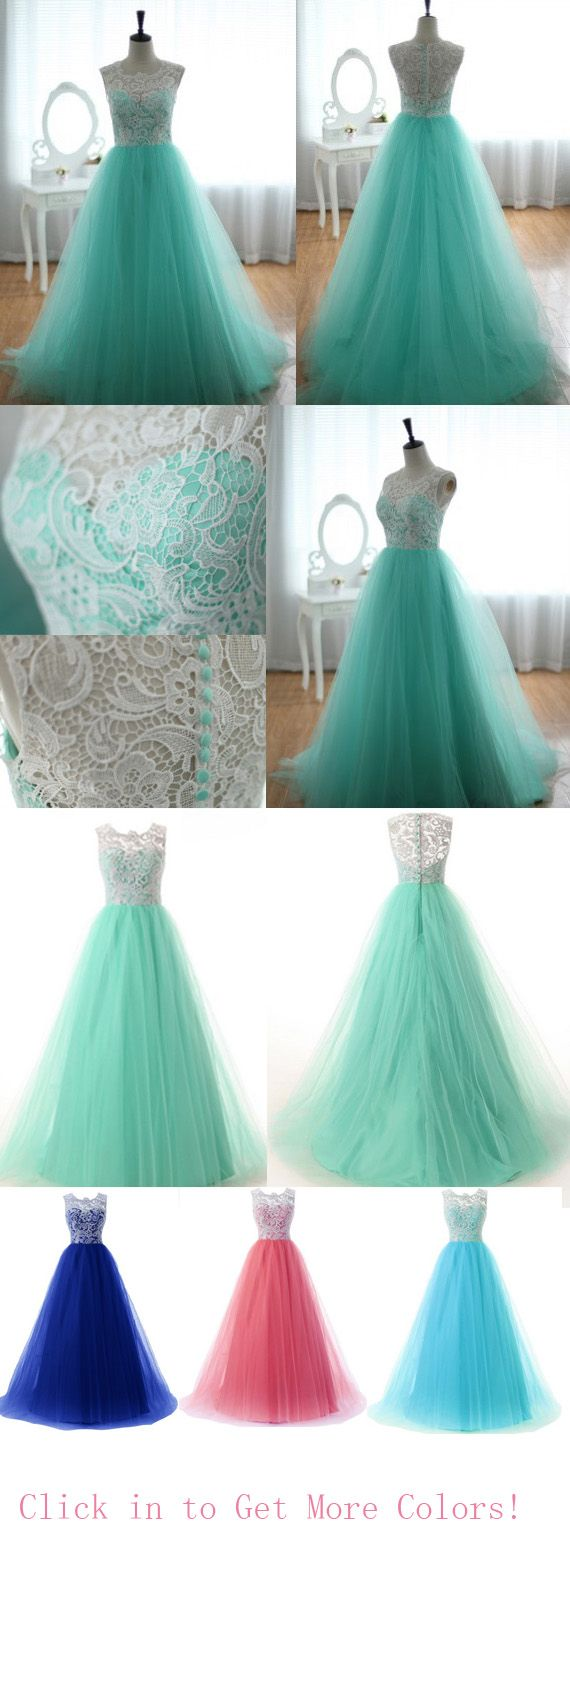 A Line and Round Neck prom dresses,Long Prom Dresses, Tull prom dress, beautiful different prom dresses Comment drown below which is your favorite.